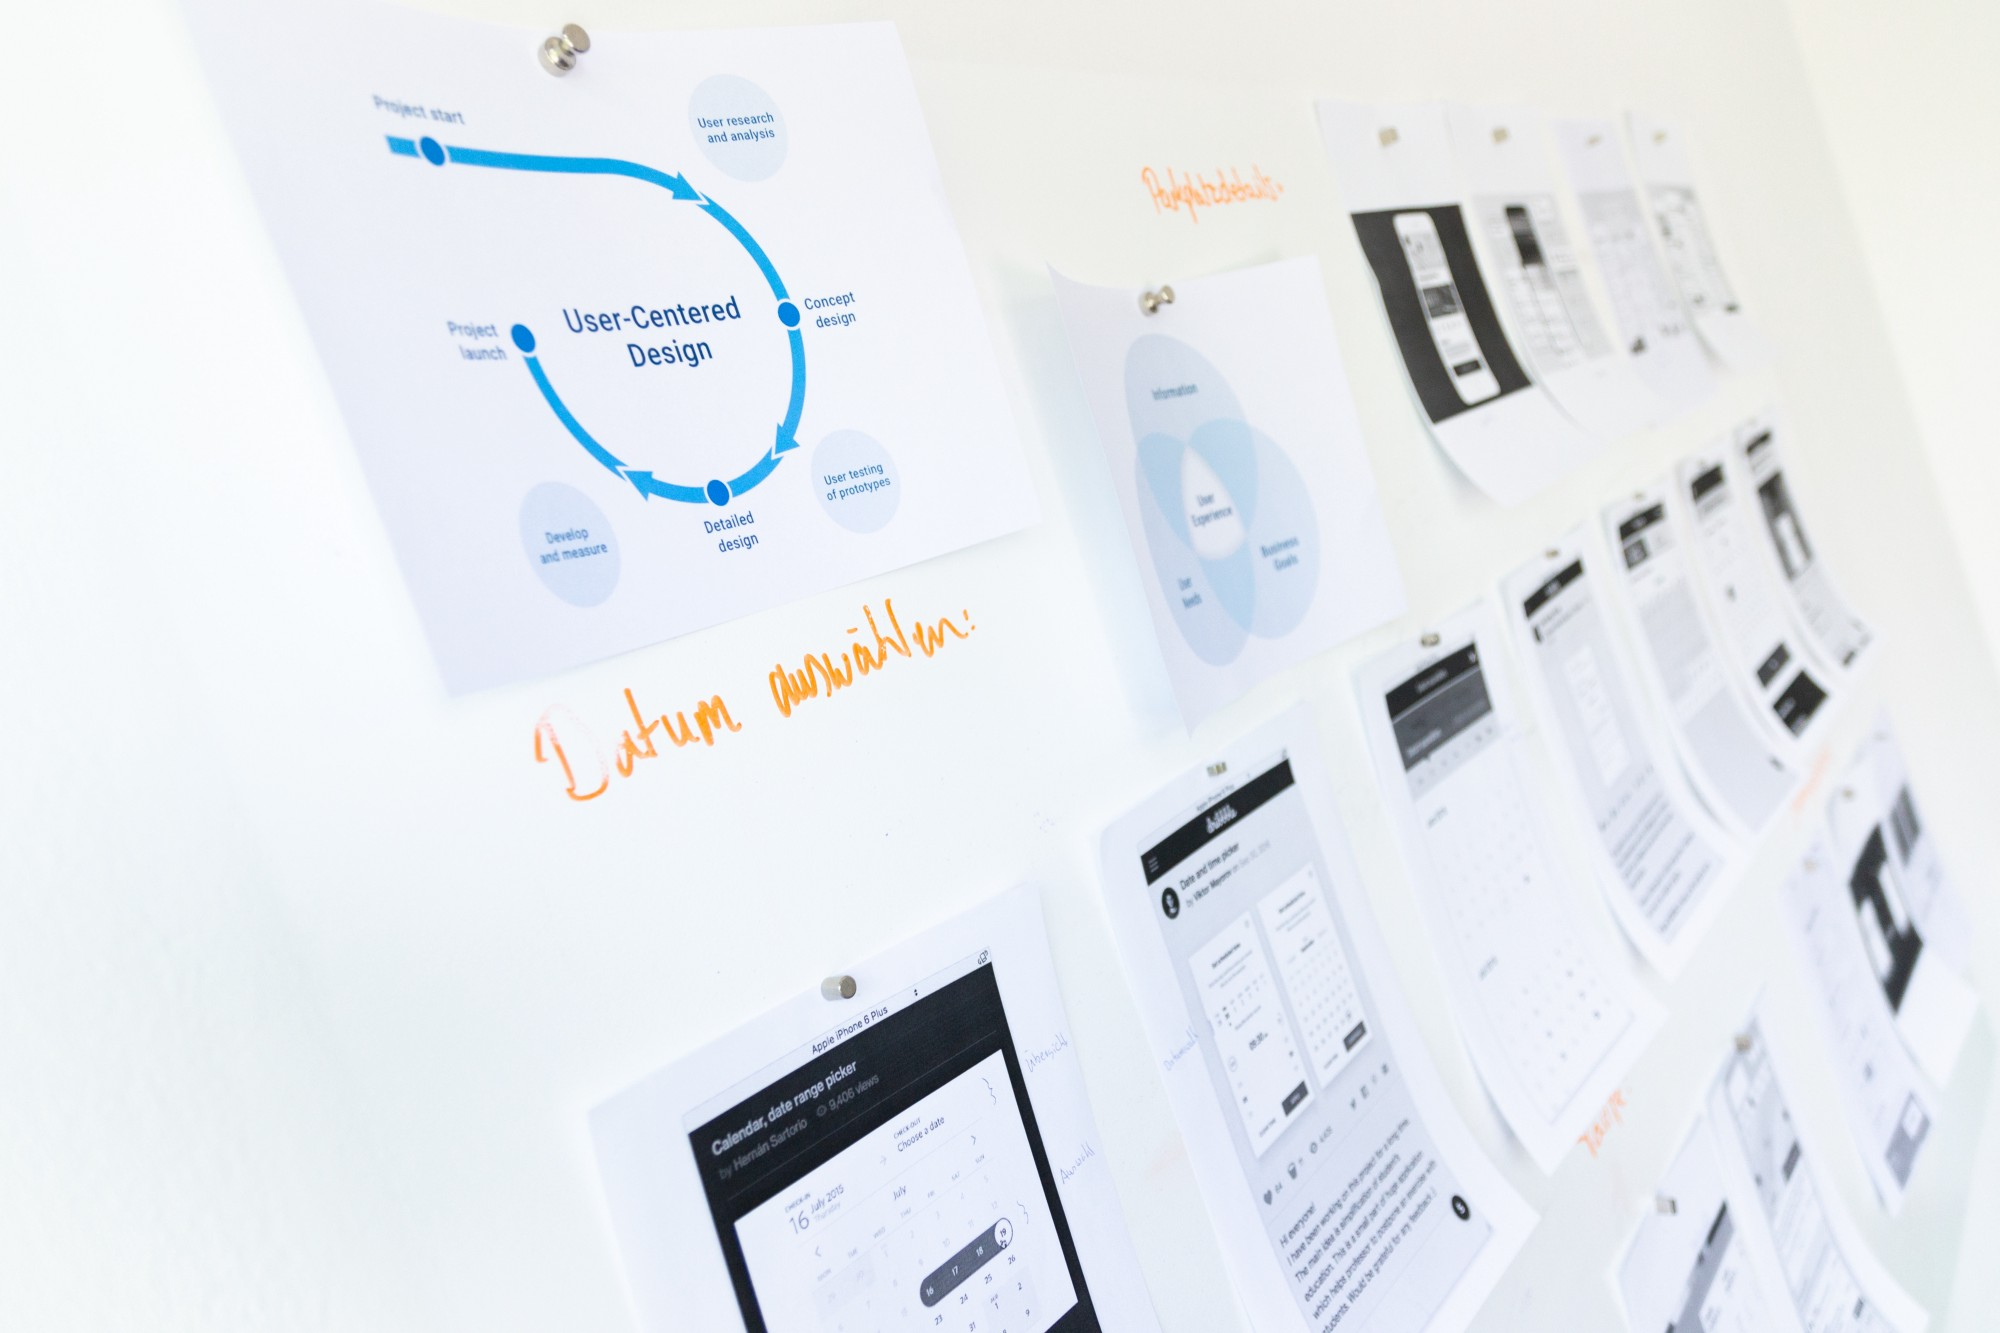 UX research on a whiteboard